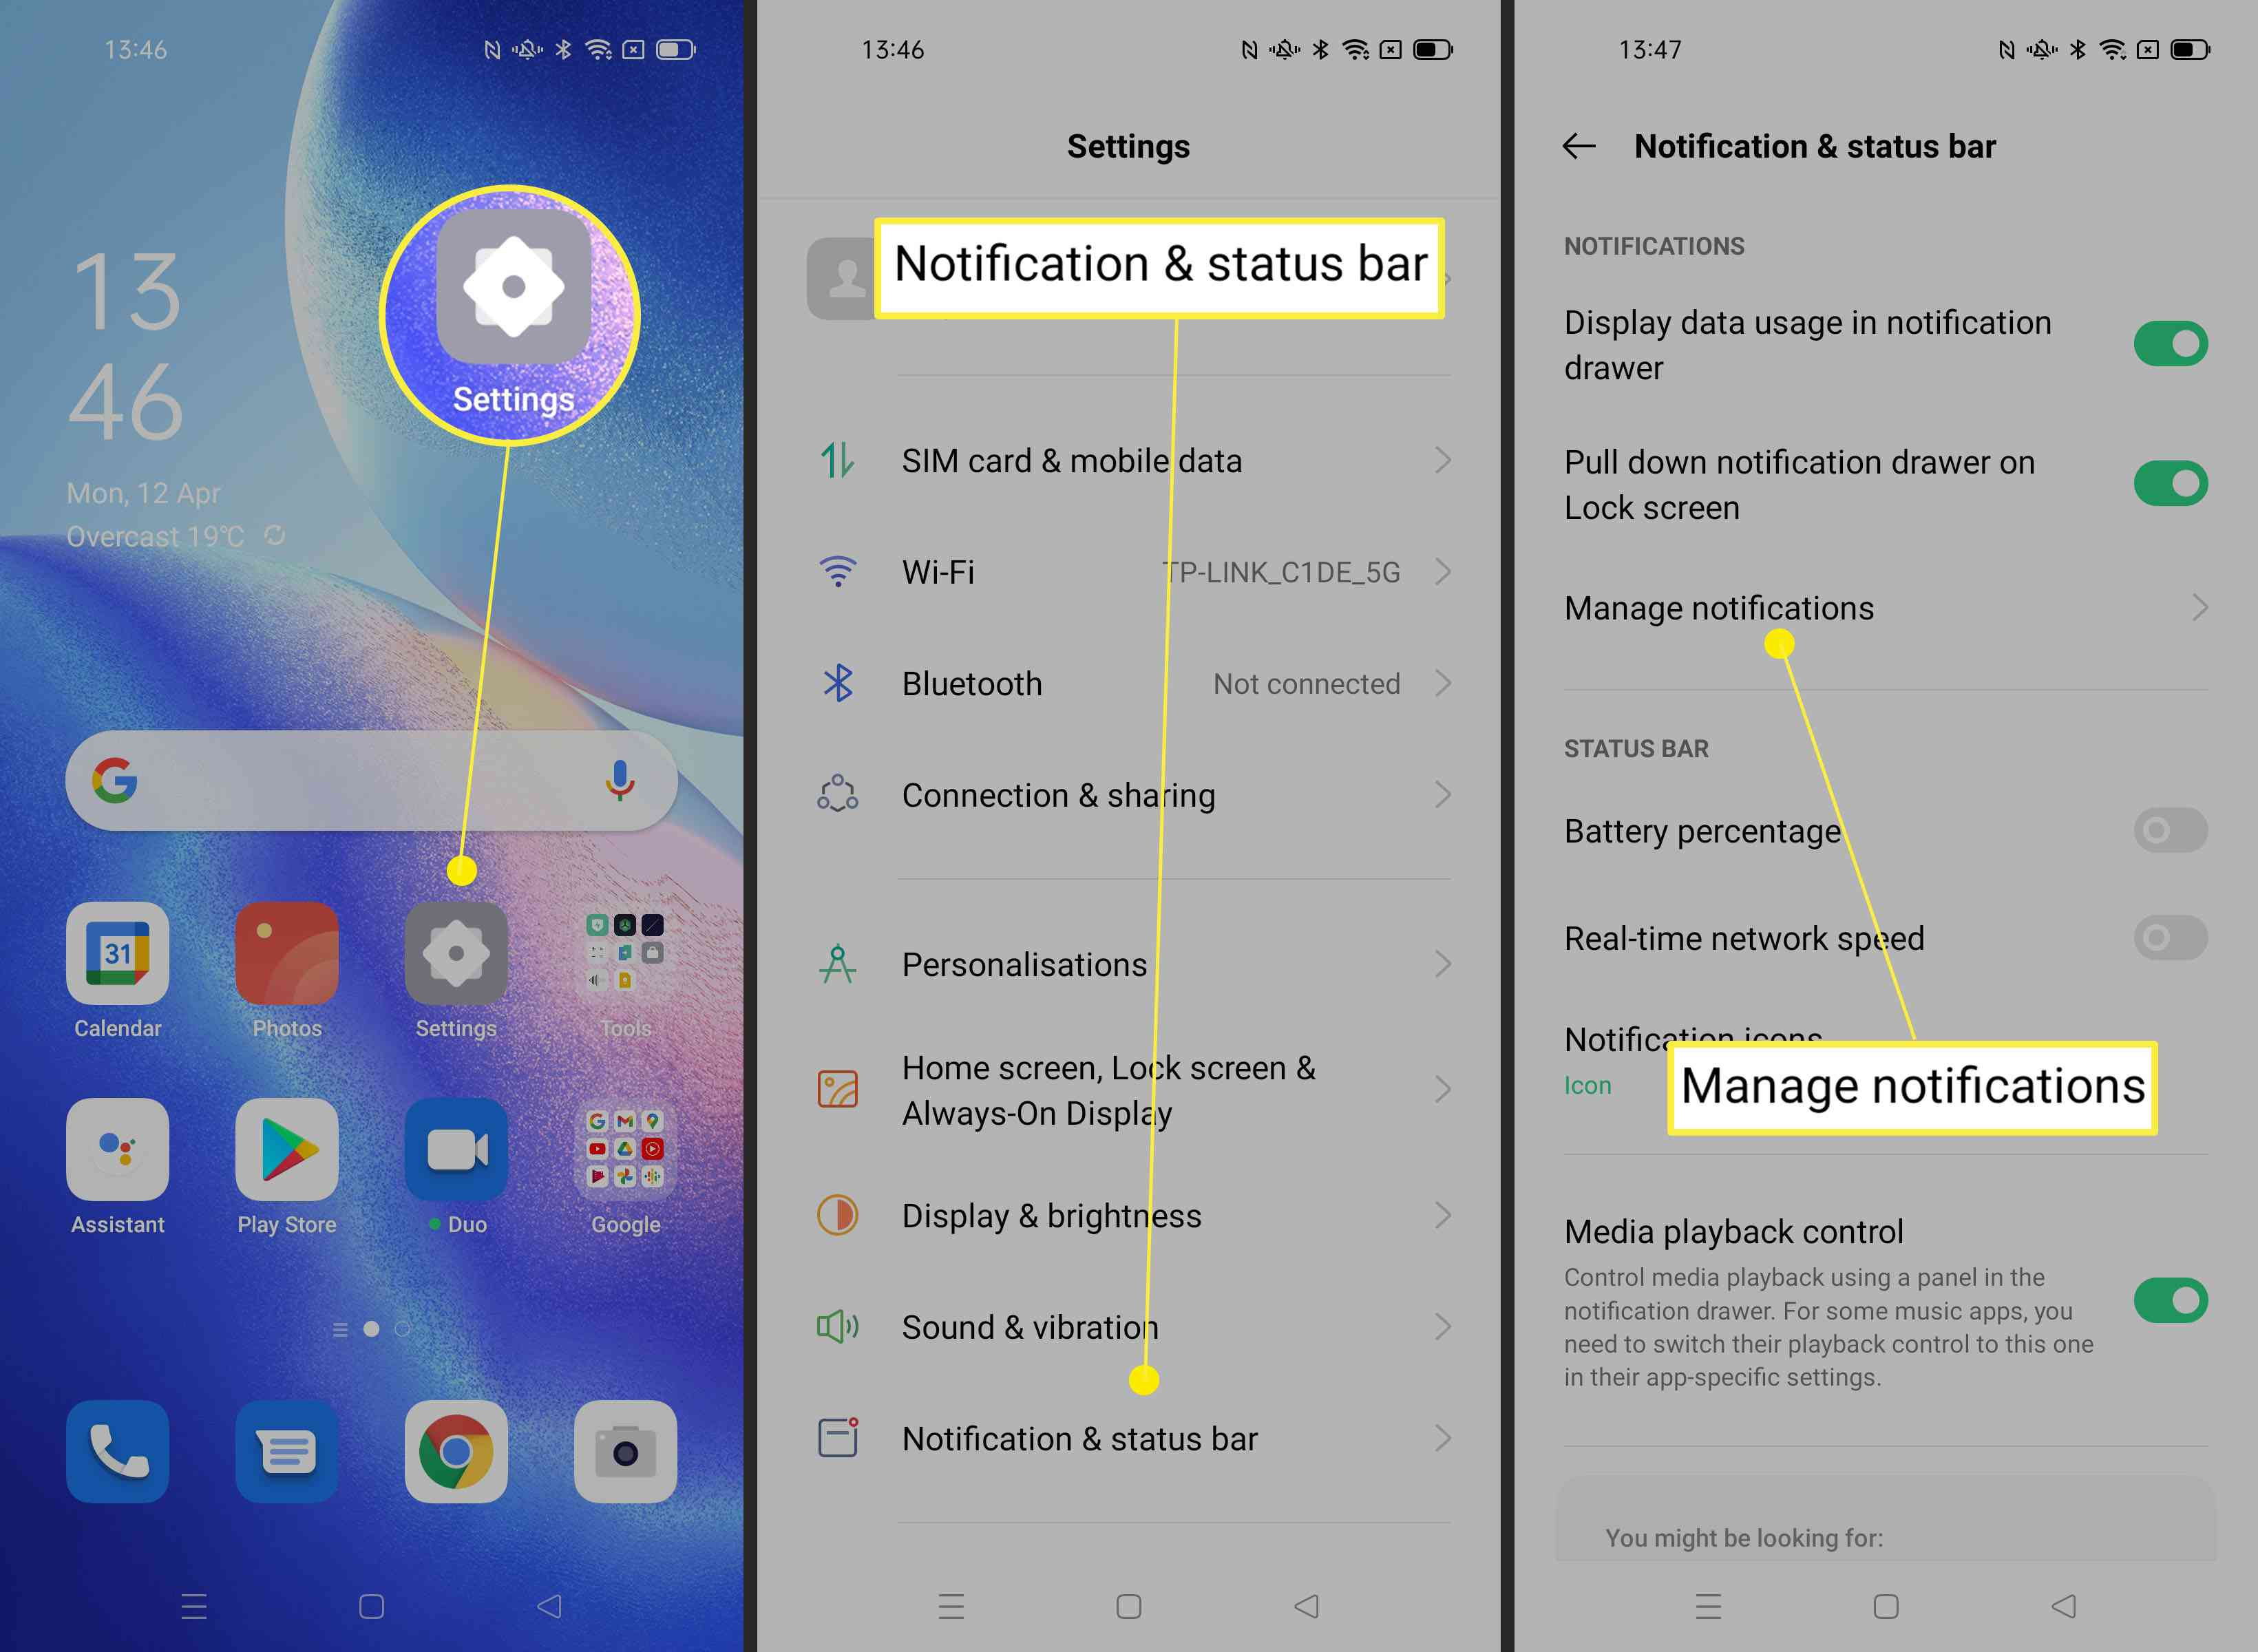 Steps required to manage notifications and adjust vibration on Android phone